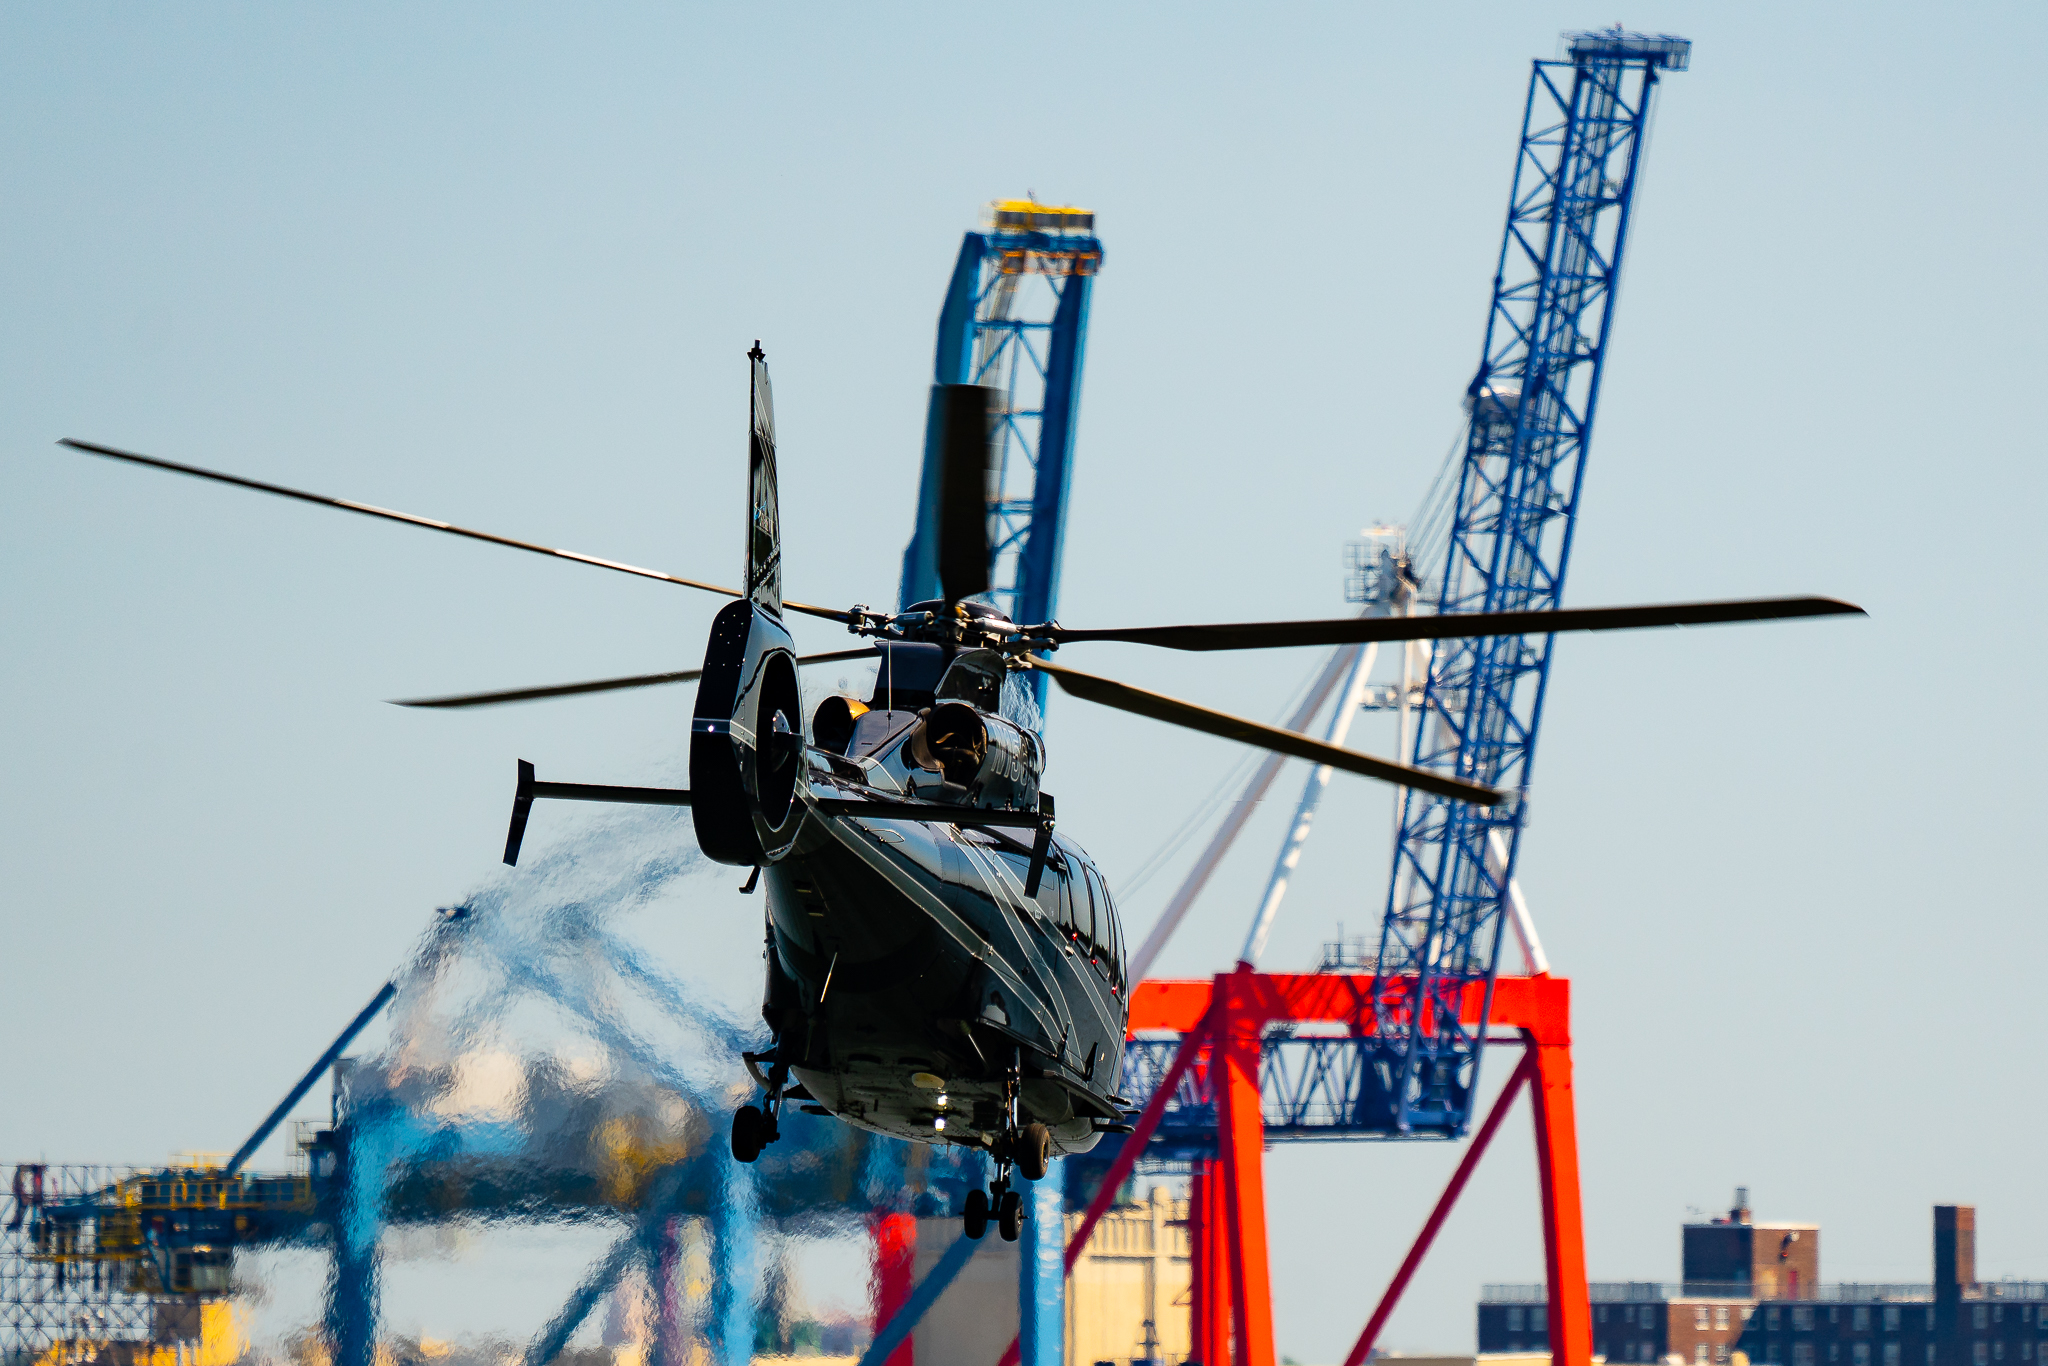 a photo of a black helicopter taking off in new york city